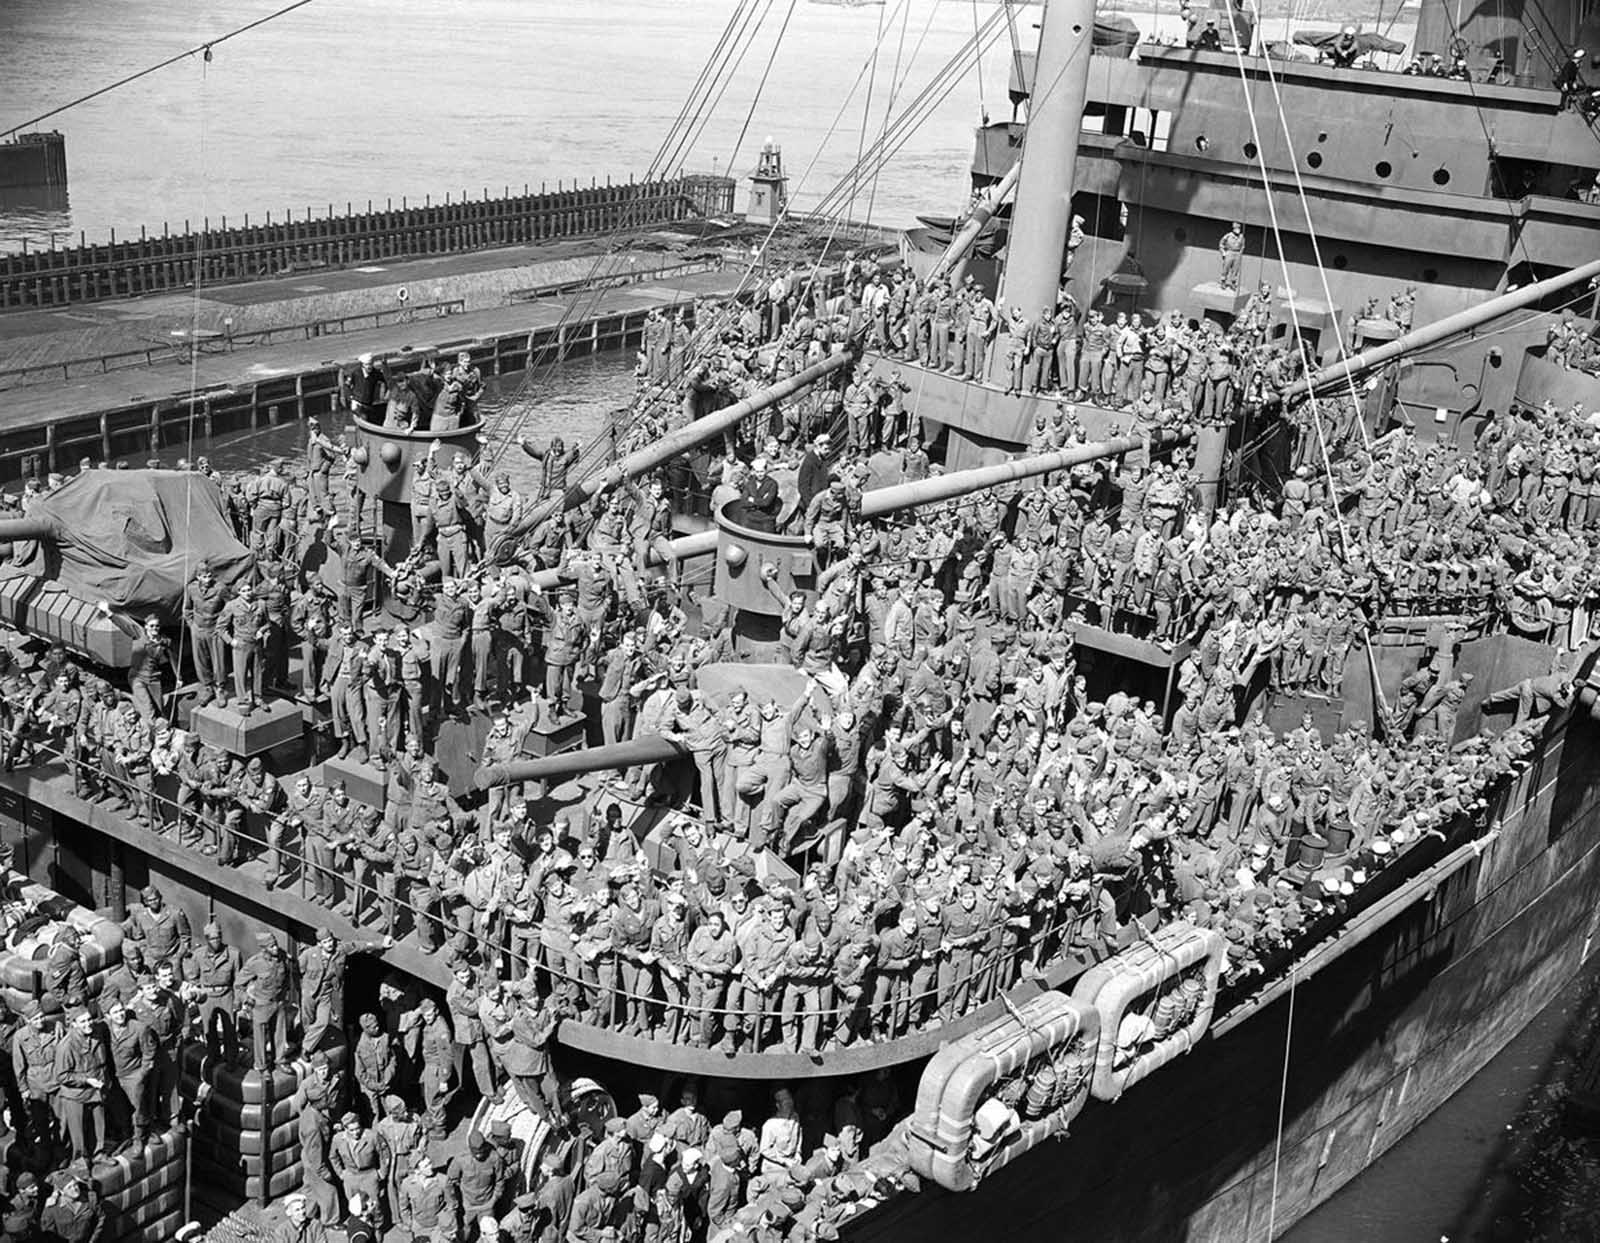 The super transport ship, General W.P. Richardson, docked in New York, with veterans of the European war cheering on June 7, 1945. Many soldiers were veterans of the African campaign, Salerno, Anzio, Cassino and the winter warfare in Italy's mountains.